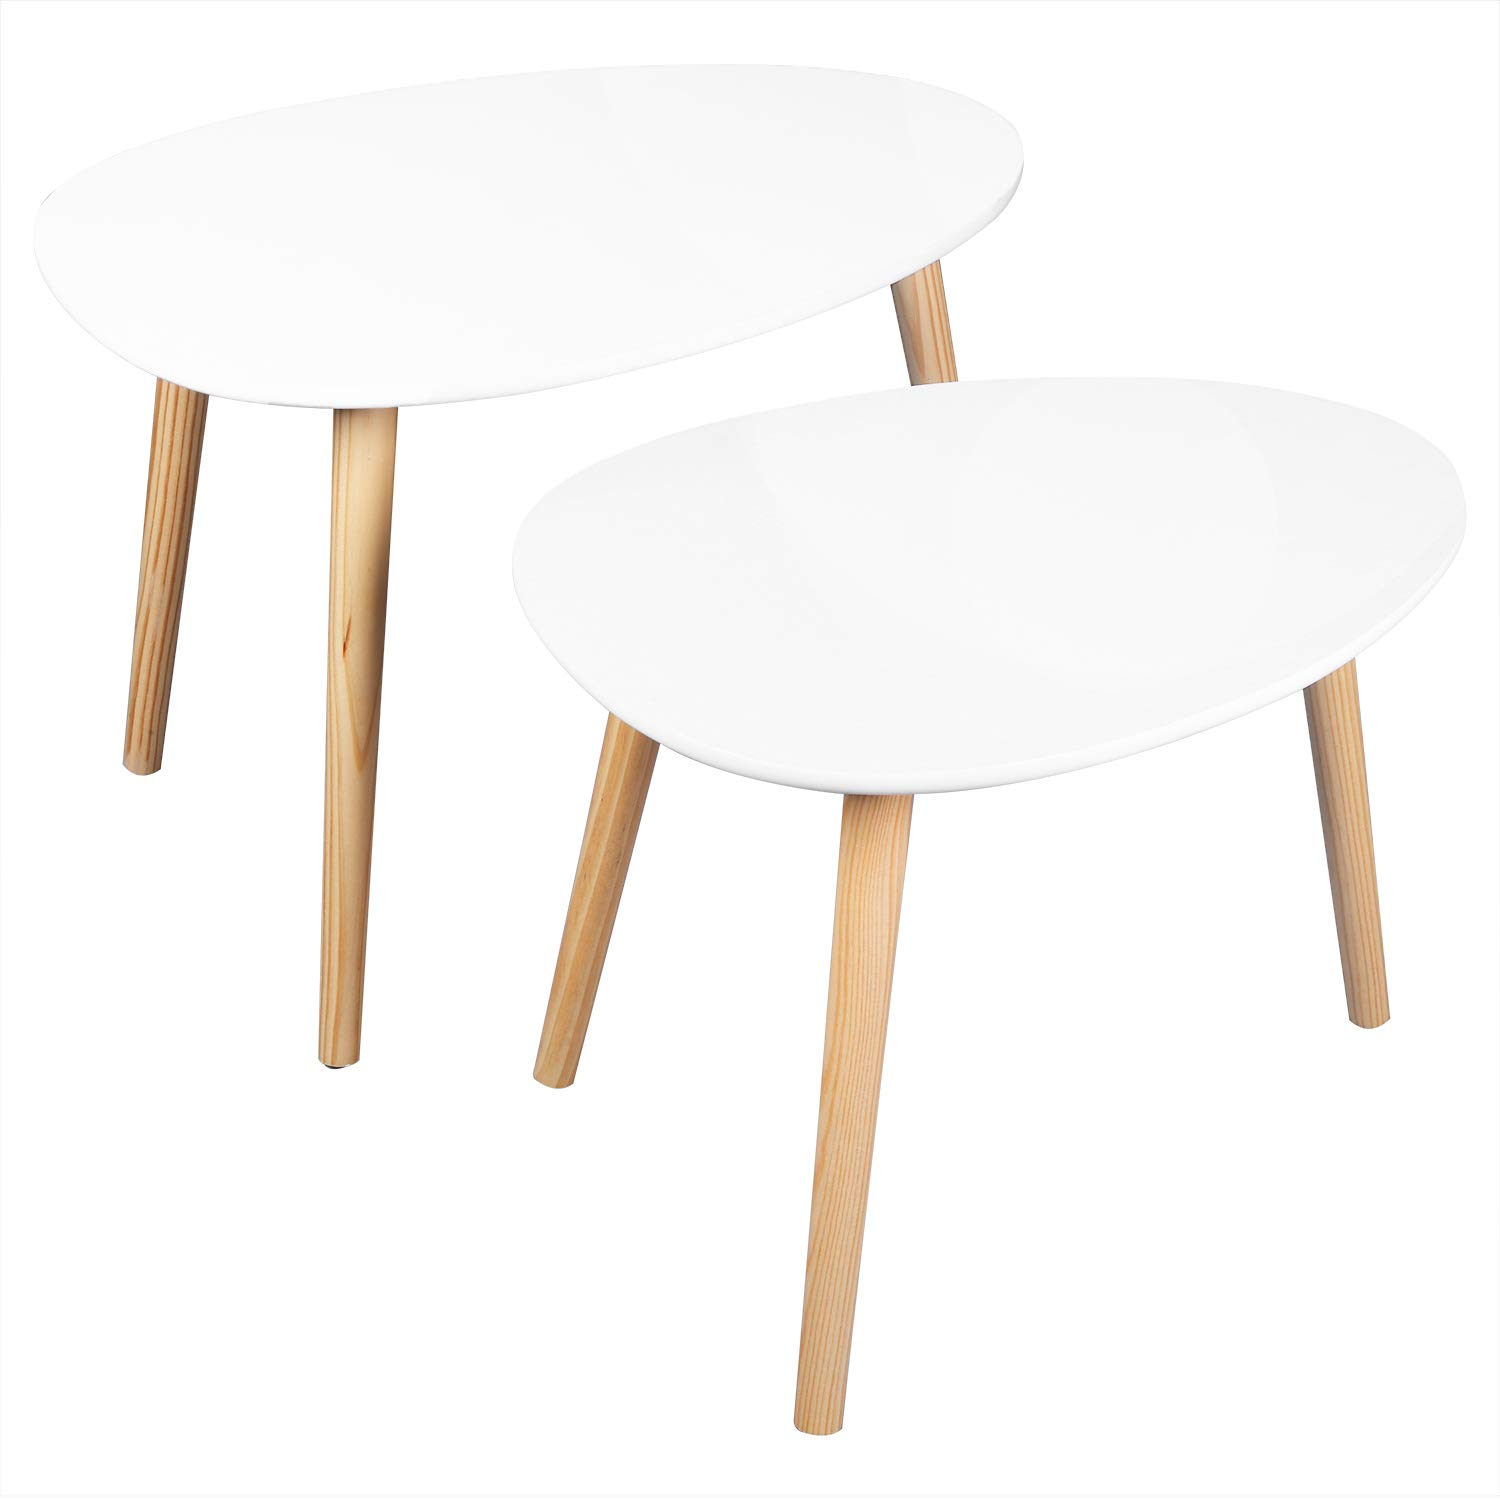 Bonnlo Nesting Tables End Tables Set of 2 for Living Room, Home and Office, White by Bonnlo